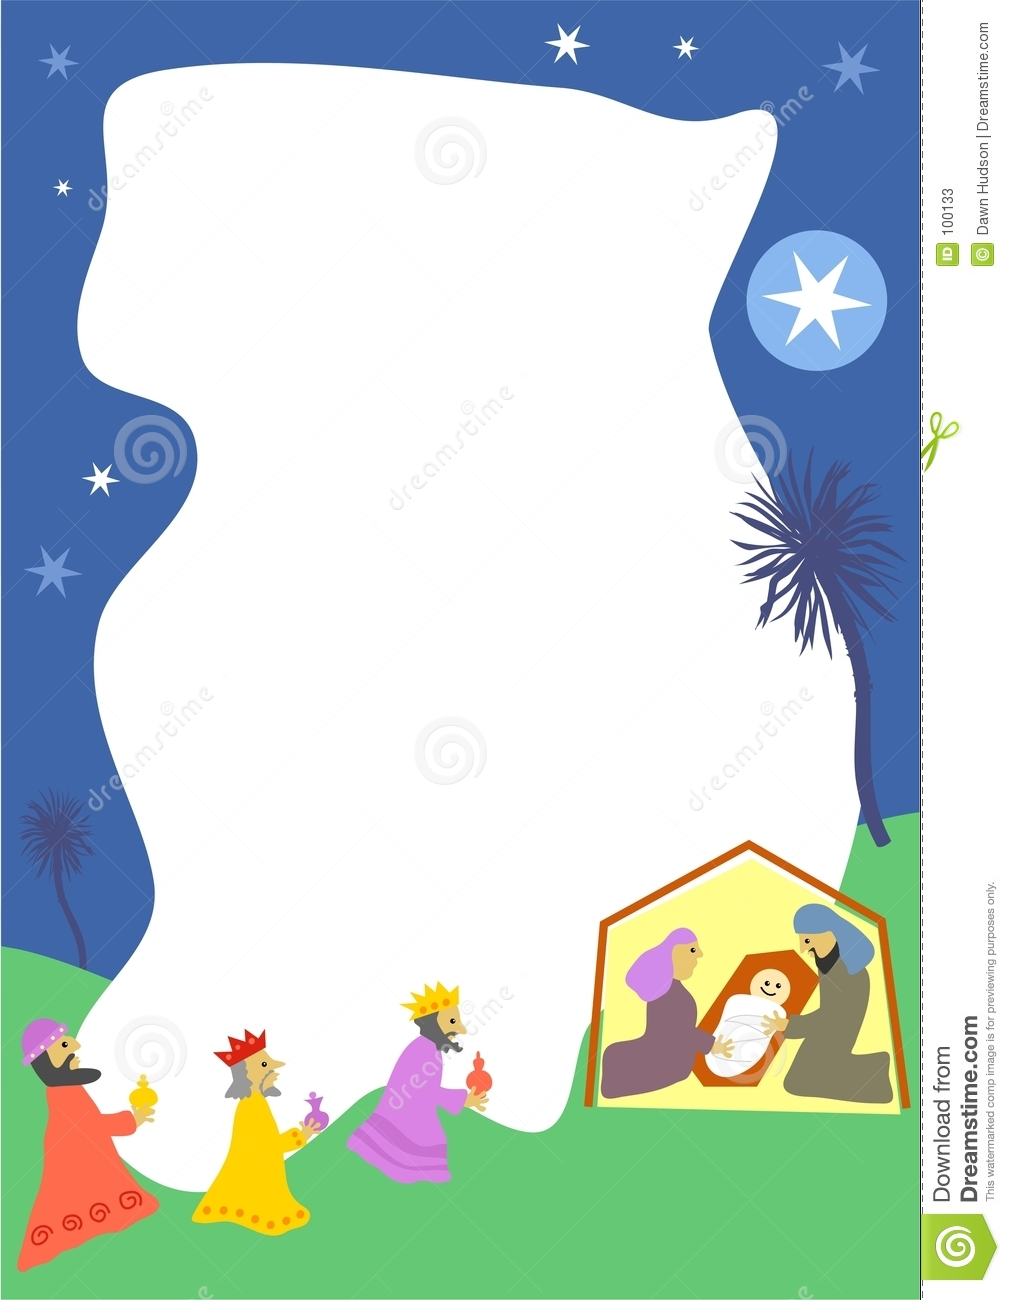 Clipart biblical christmas frames biblical transparent library Free Religious Borders Clipart | Free download best Free Religious ... transparent library